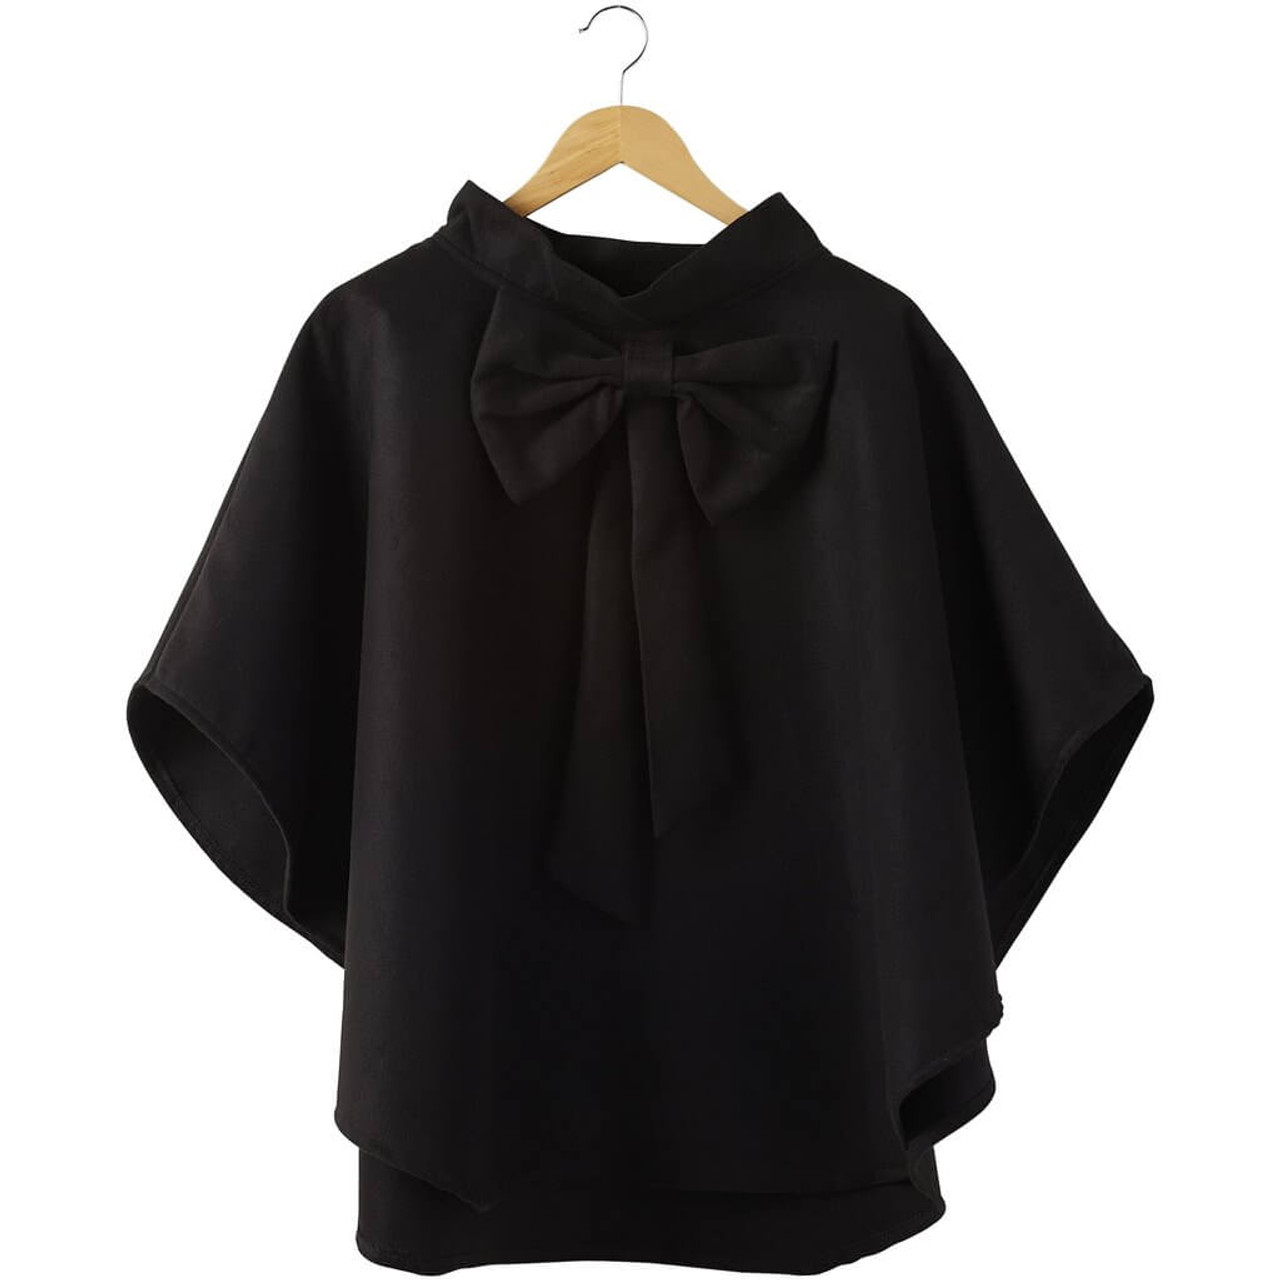 """Black Elsa Bow Cape Rounded edges and an oversized bow make this cape an absolute beauty that will elevate any outfit in an instant. Approx 29.5"""" long; one size fits most."""